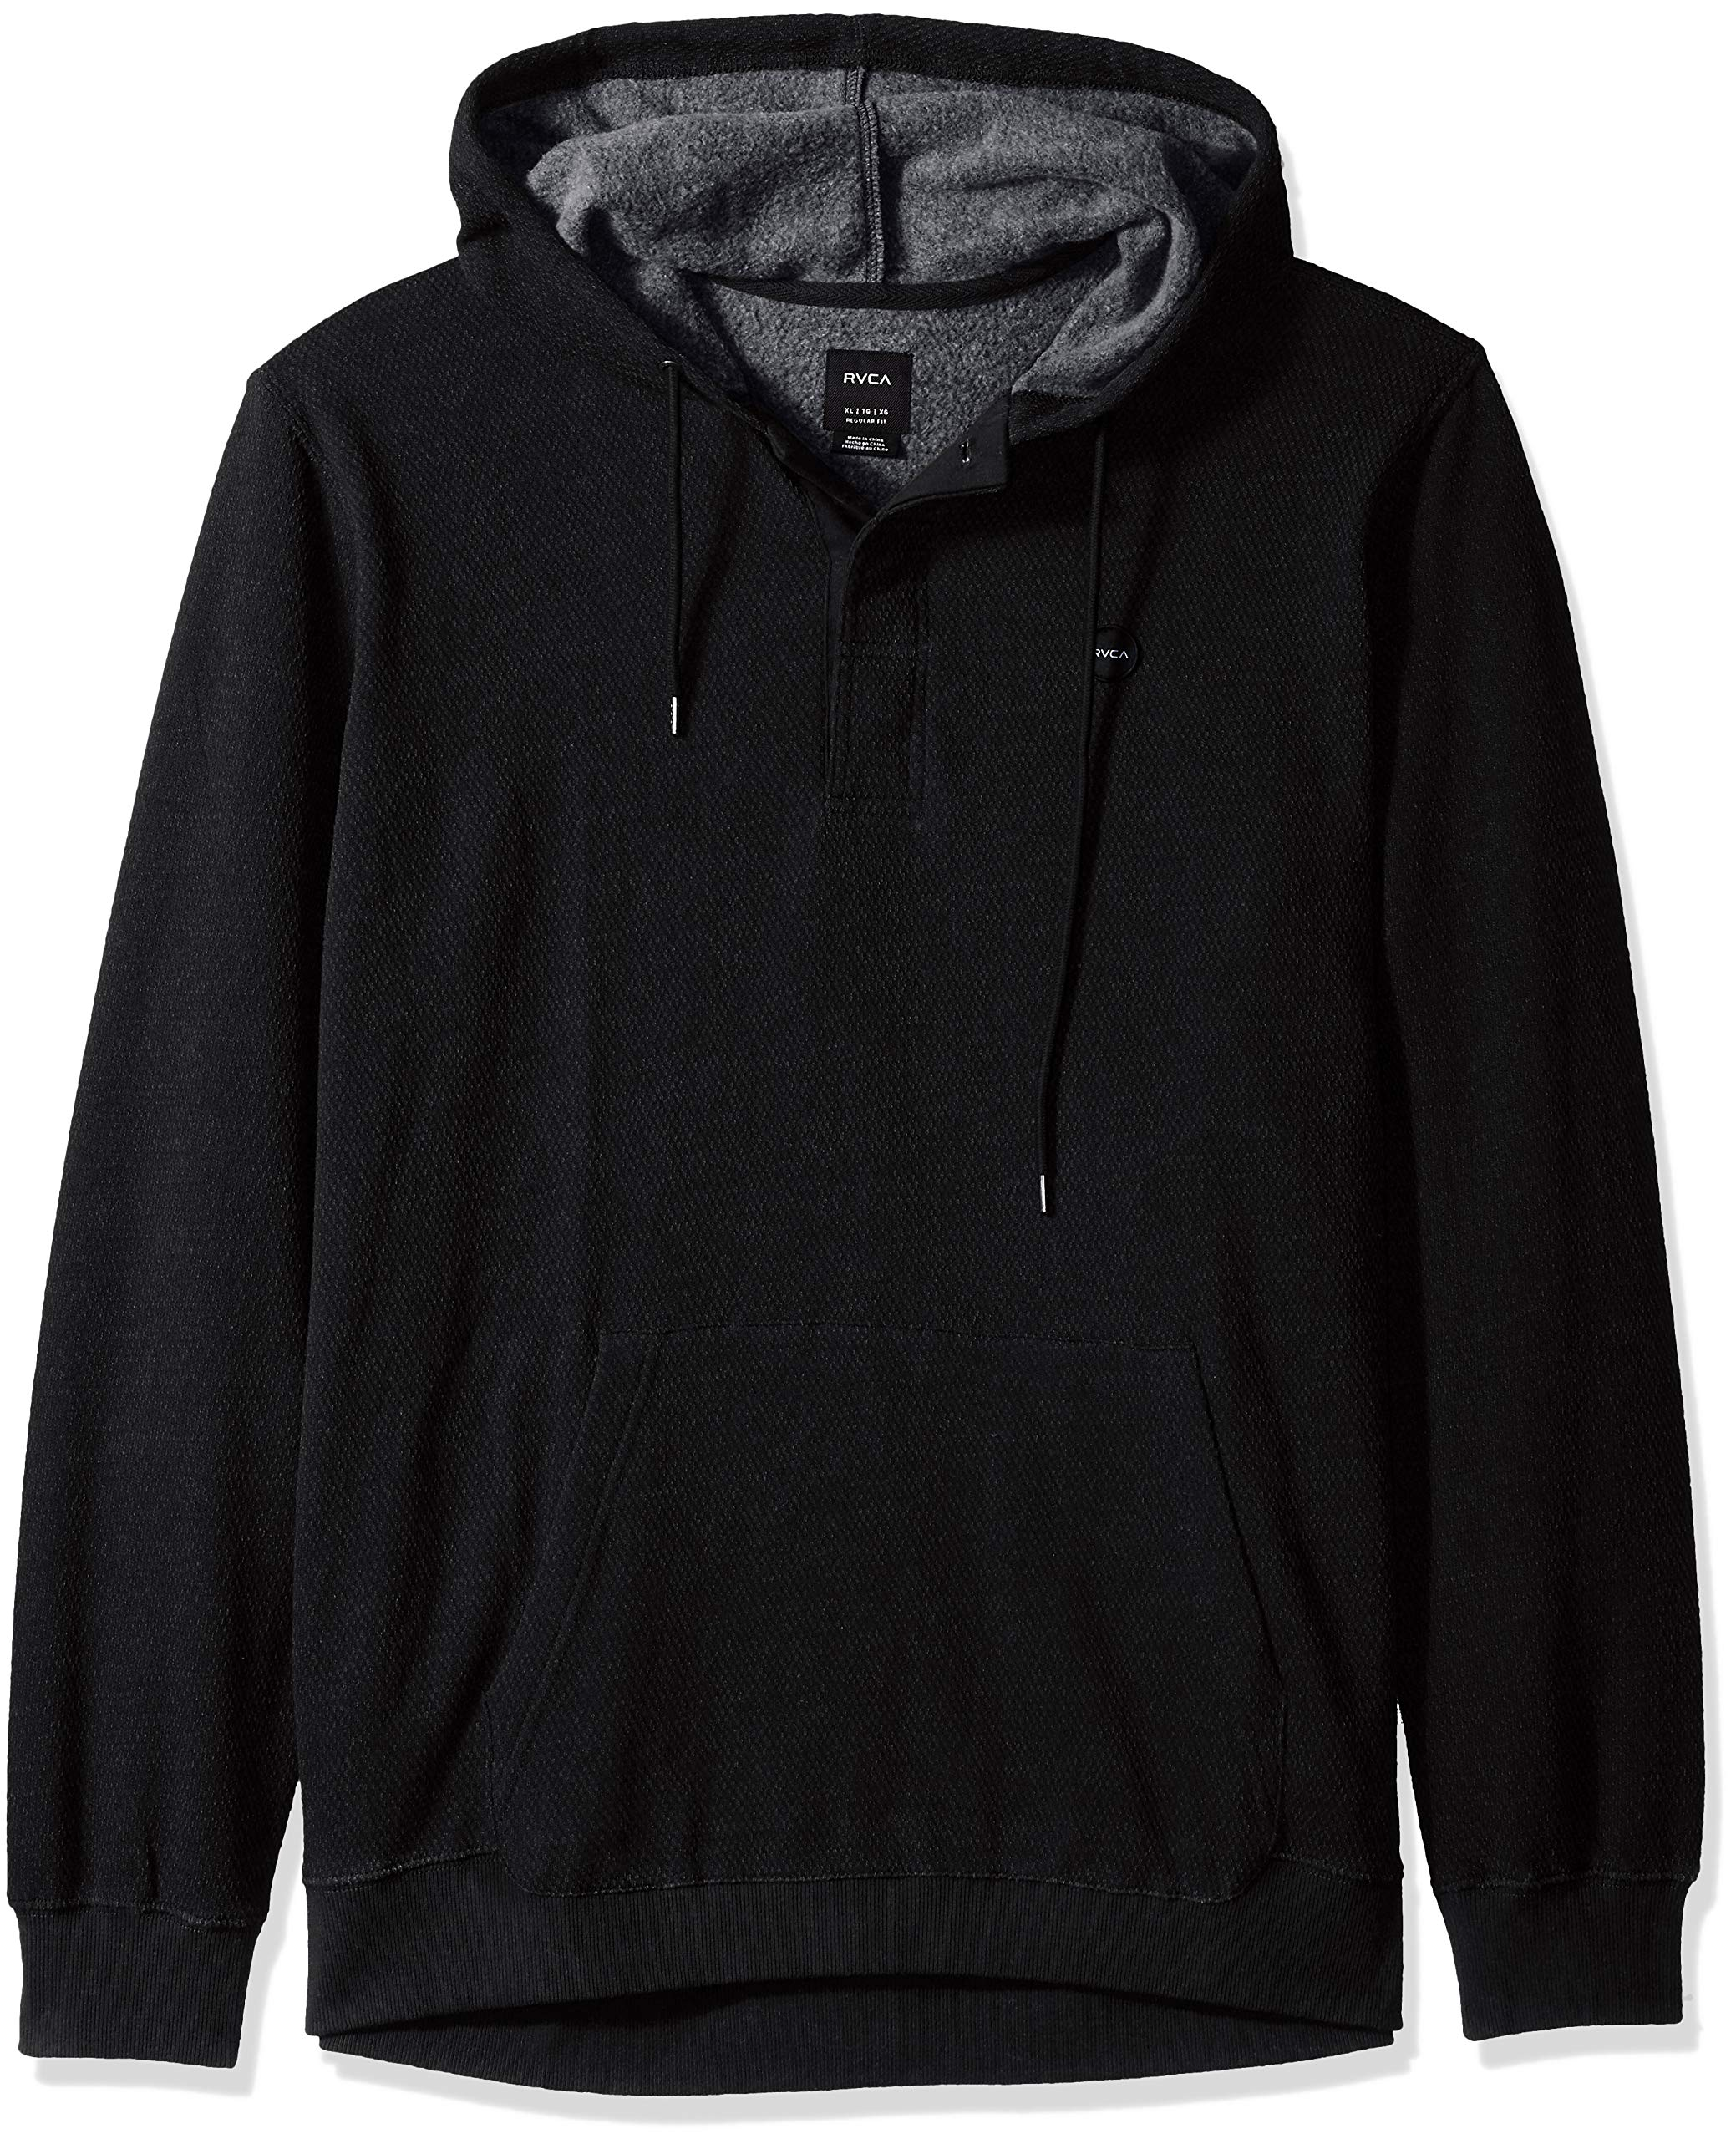 RVCA Men's Lupo Pullover Hooded Fleece